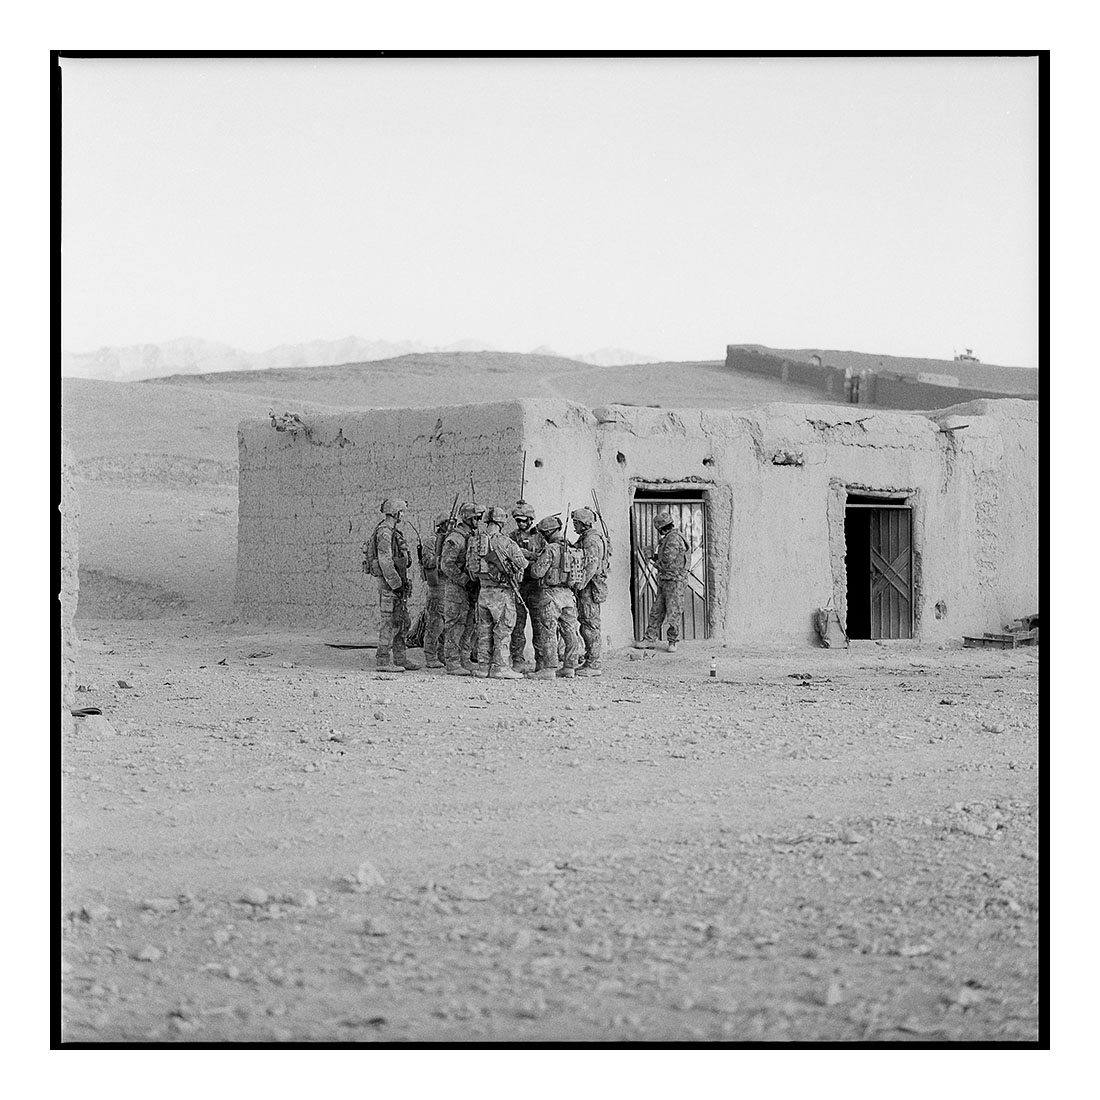 Briefing #02   (2011) Archival pigment prints on Ilford paper 40cm x 40cm | Edition of 25 + 3 Artist Proofs 100cm x 100cm | Edition of 10 + 3 Artist Proofs